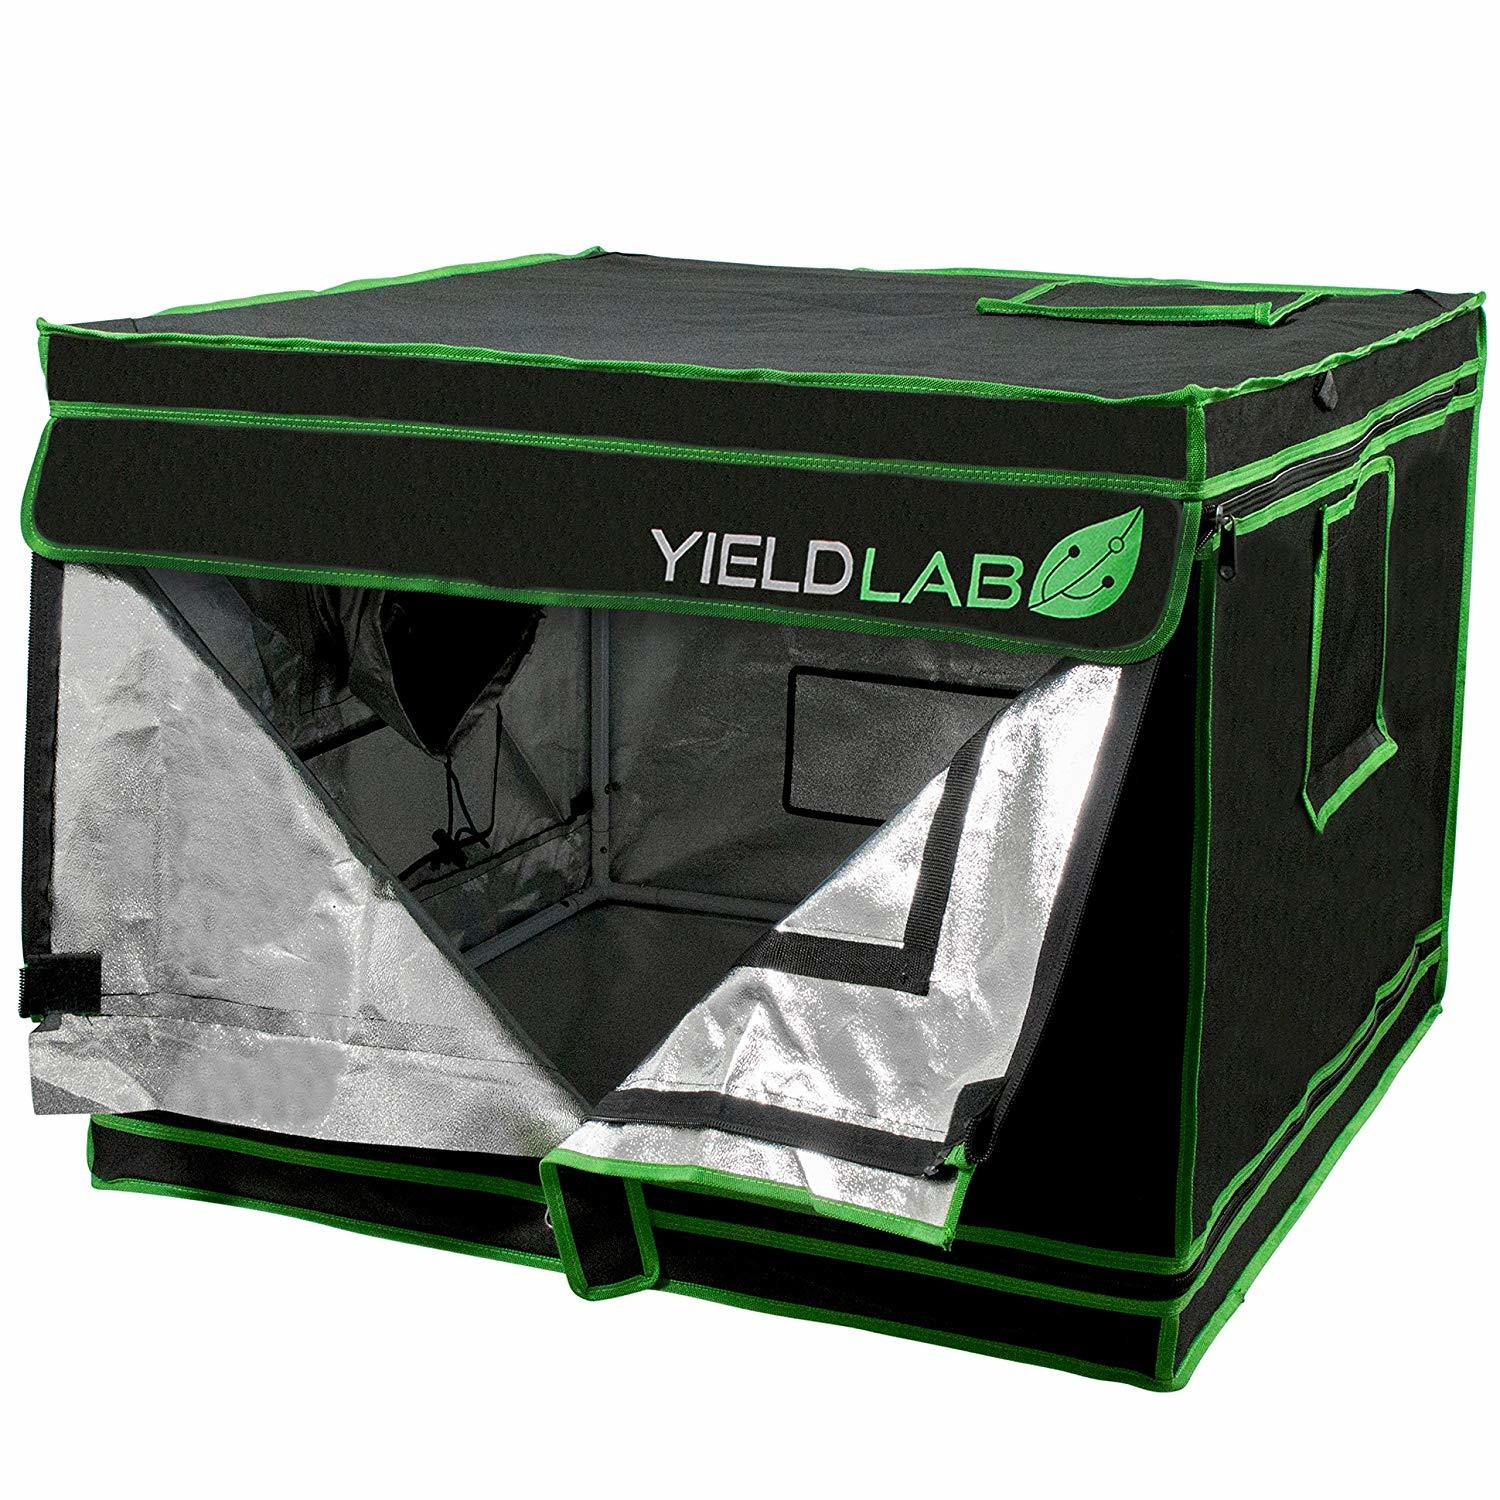 Best Mini Grow Tents in 2021